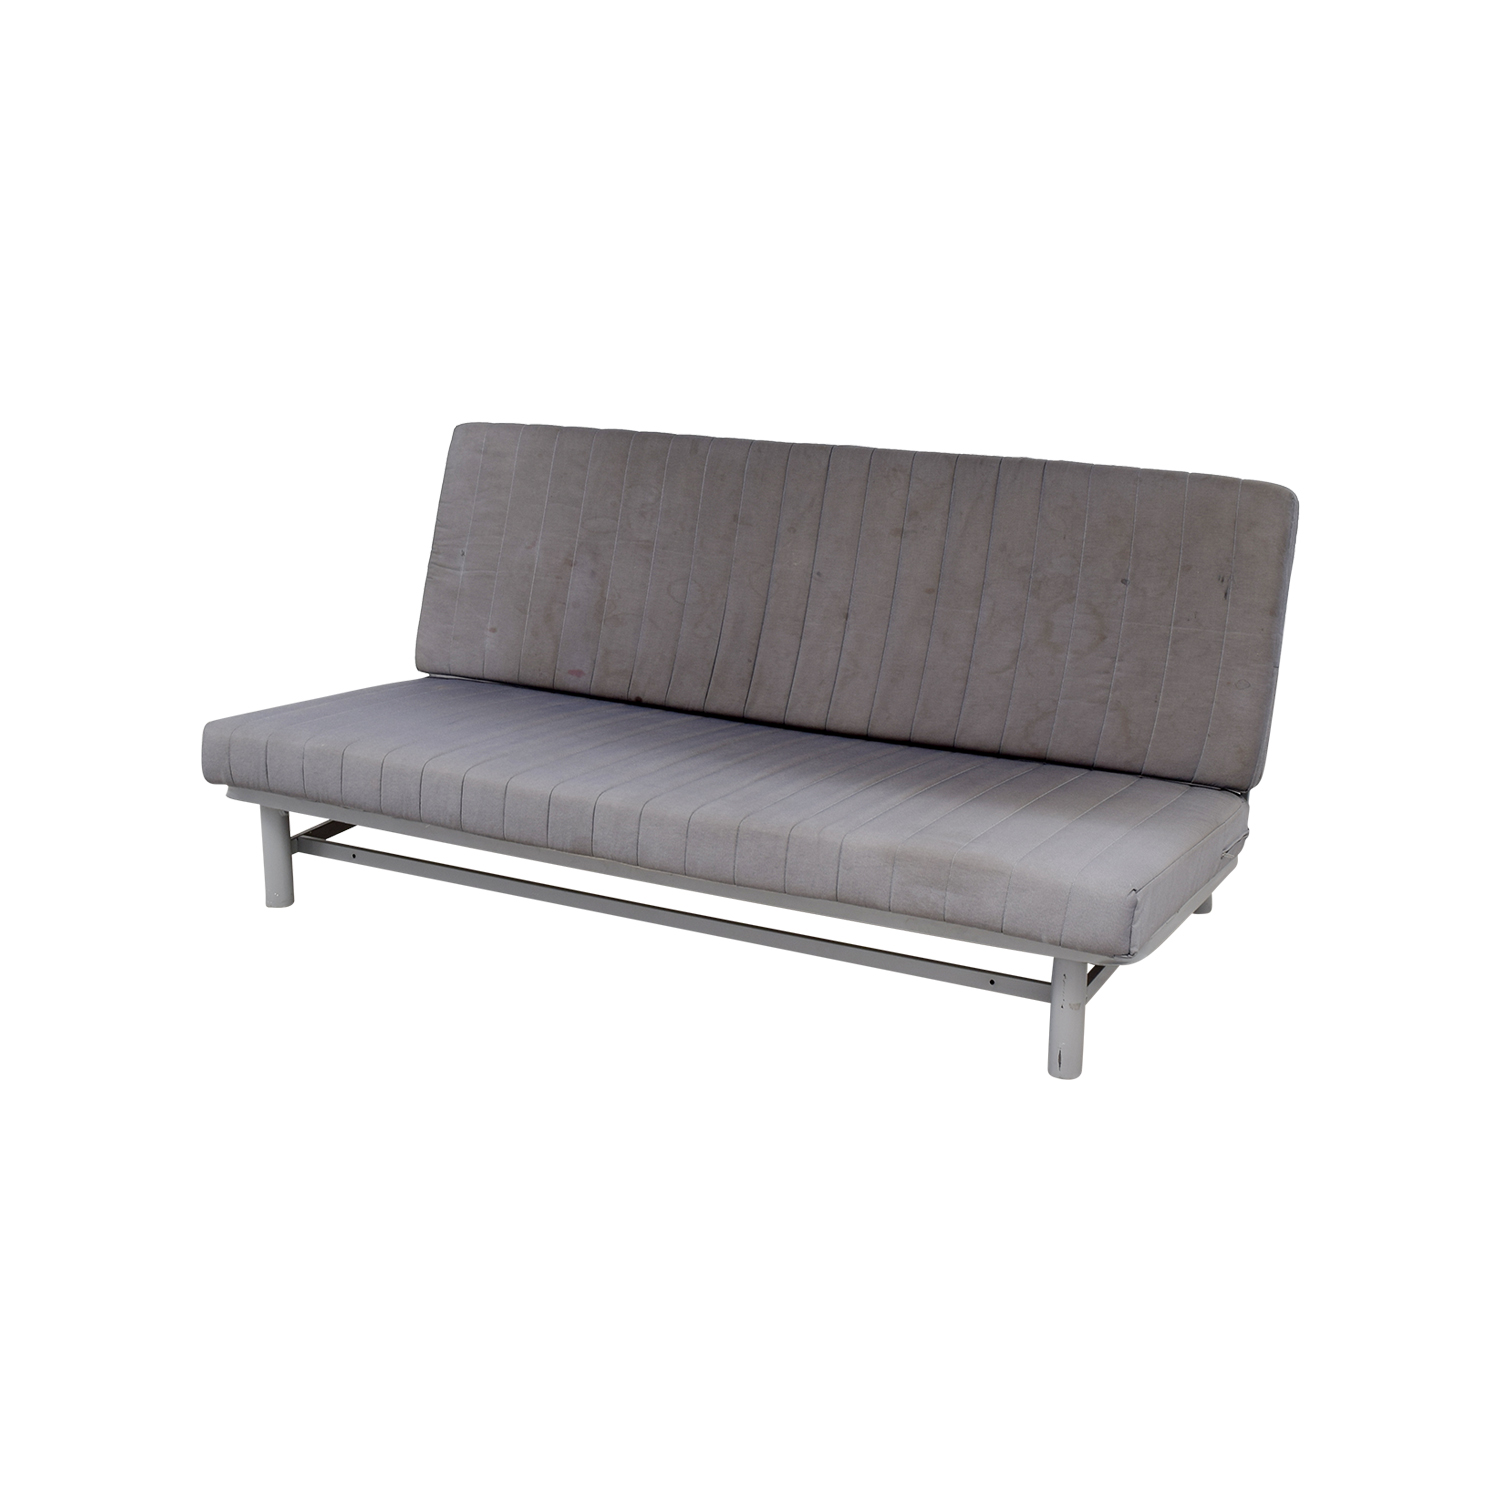 Beau ... Buy IKEA IKEA Grey Sofa Bed Online ...